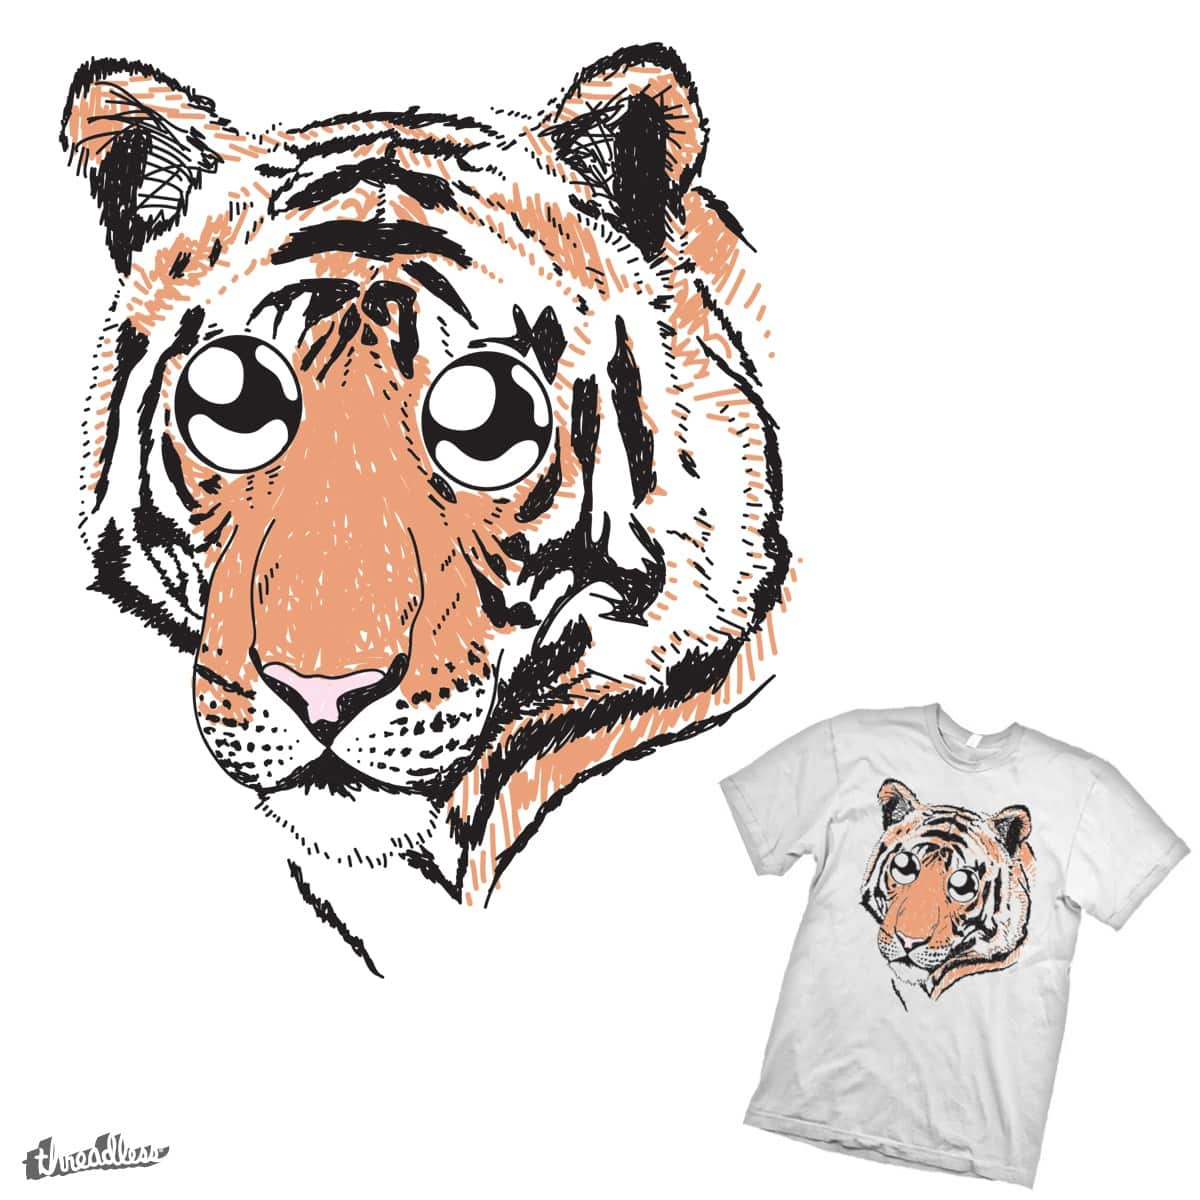 Hungry Eyes by parallelish on Threadless